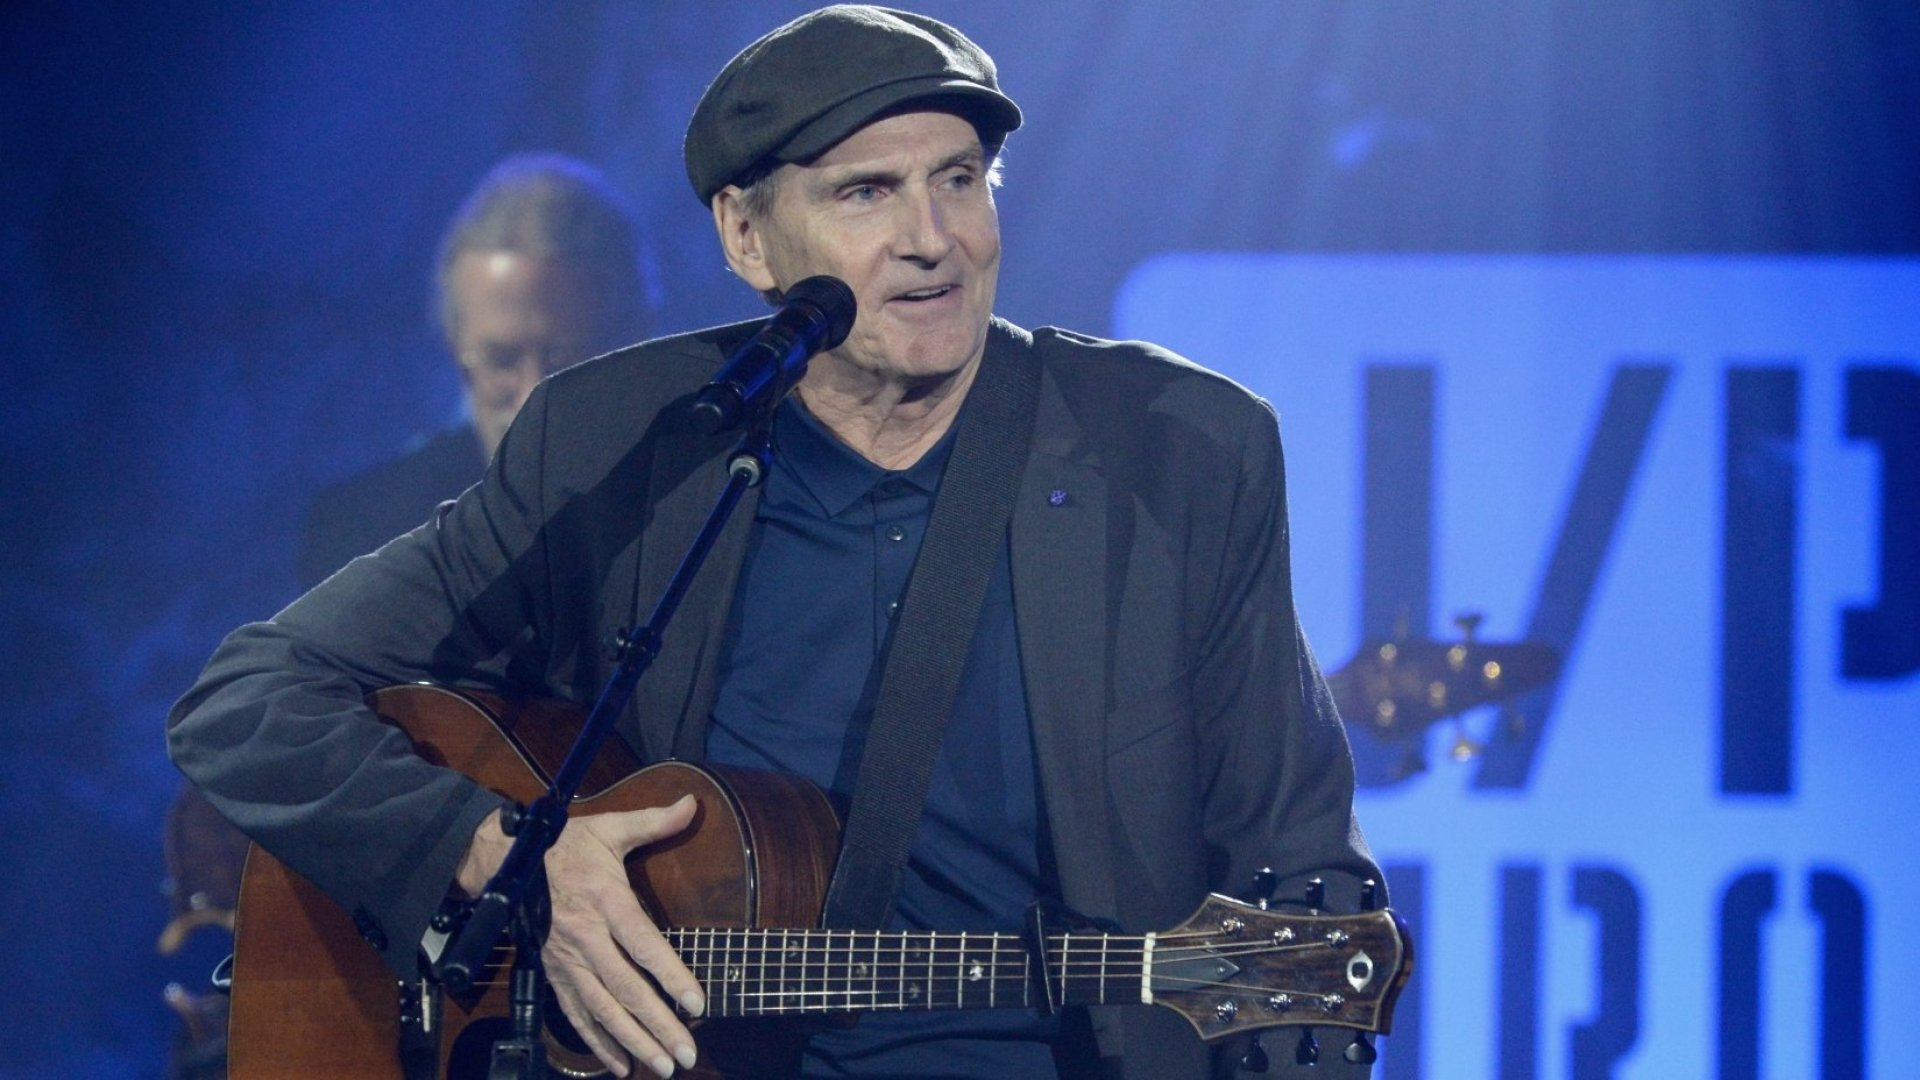 James Taylor. The choice of extroverts?